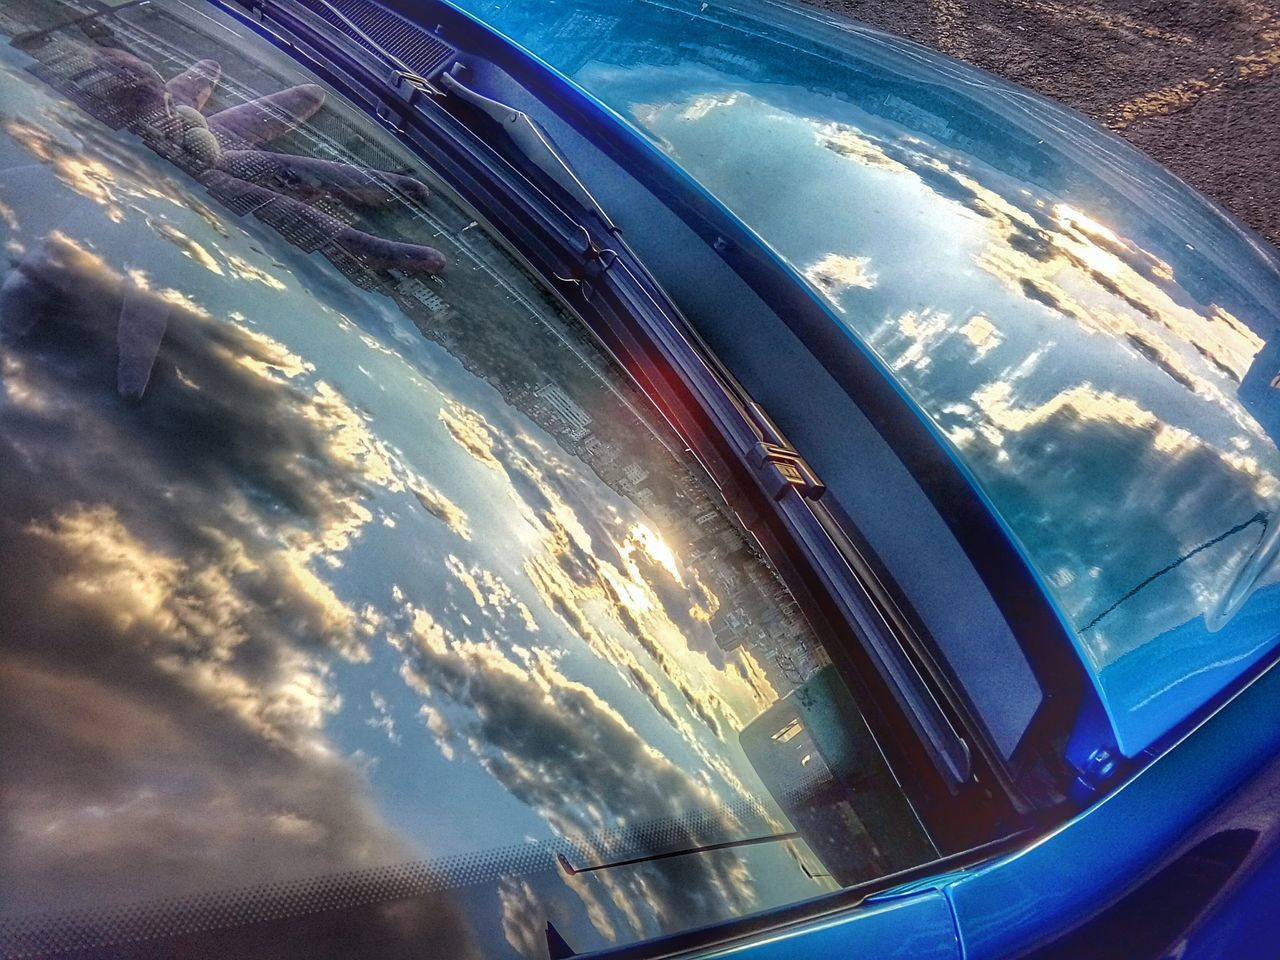 Atardece entre coches. Sunset between Cars Bilbao Landscape Blue Reflection Cloud - Sky Airplane Aerial View No People Sea Day Air Vehicle Outdoors Commercial Airplane Sky Water Cockpit Wave Close-up